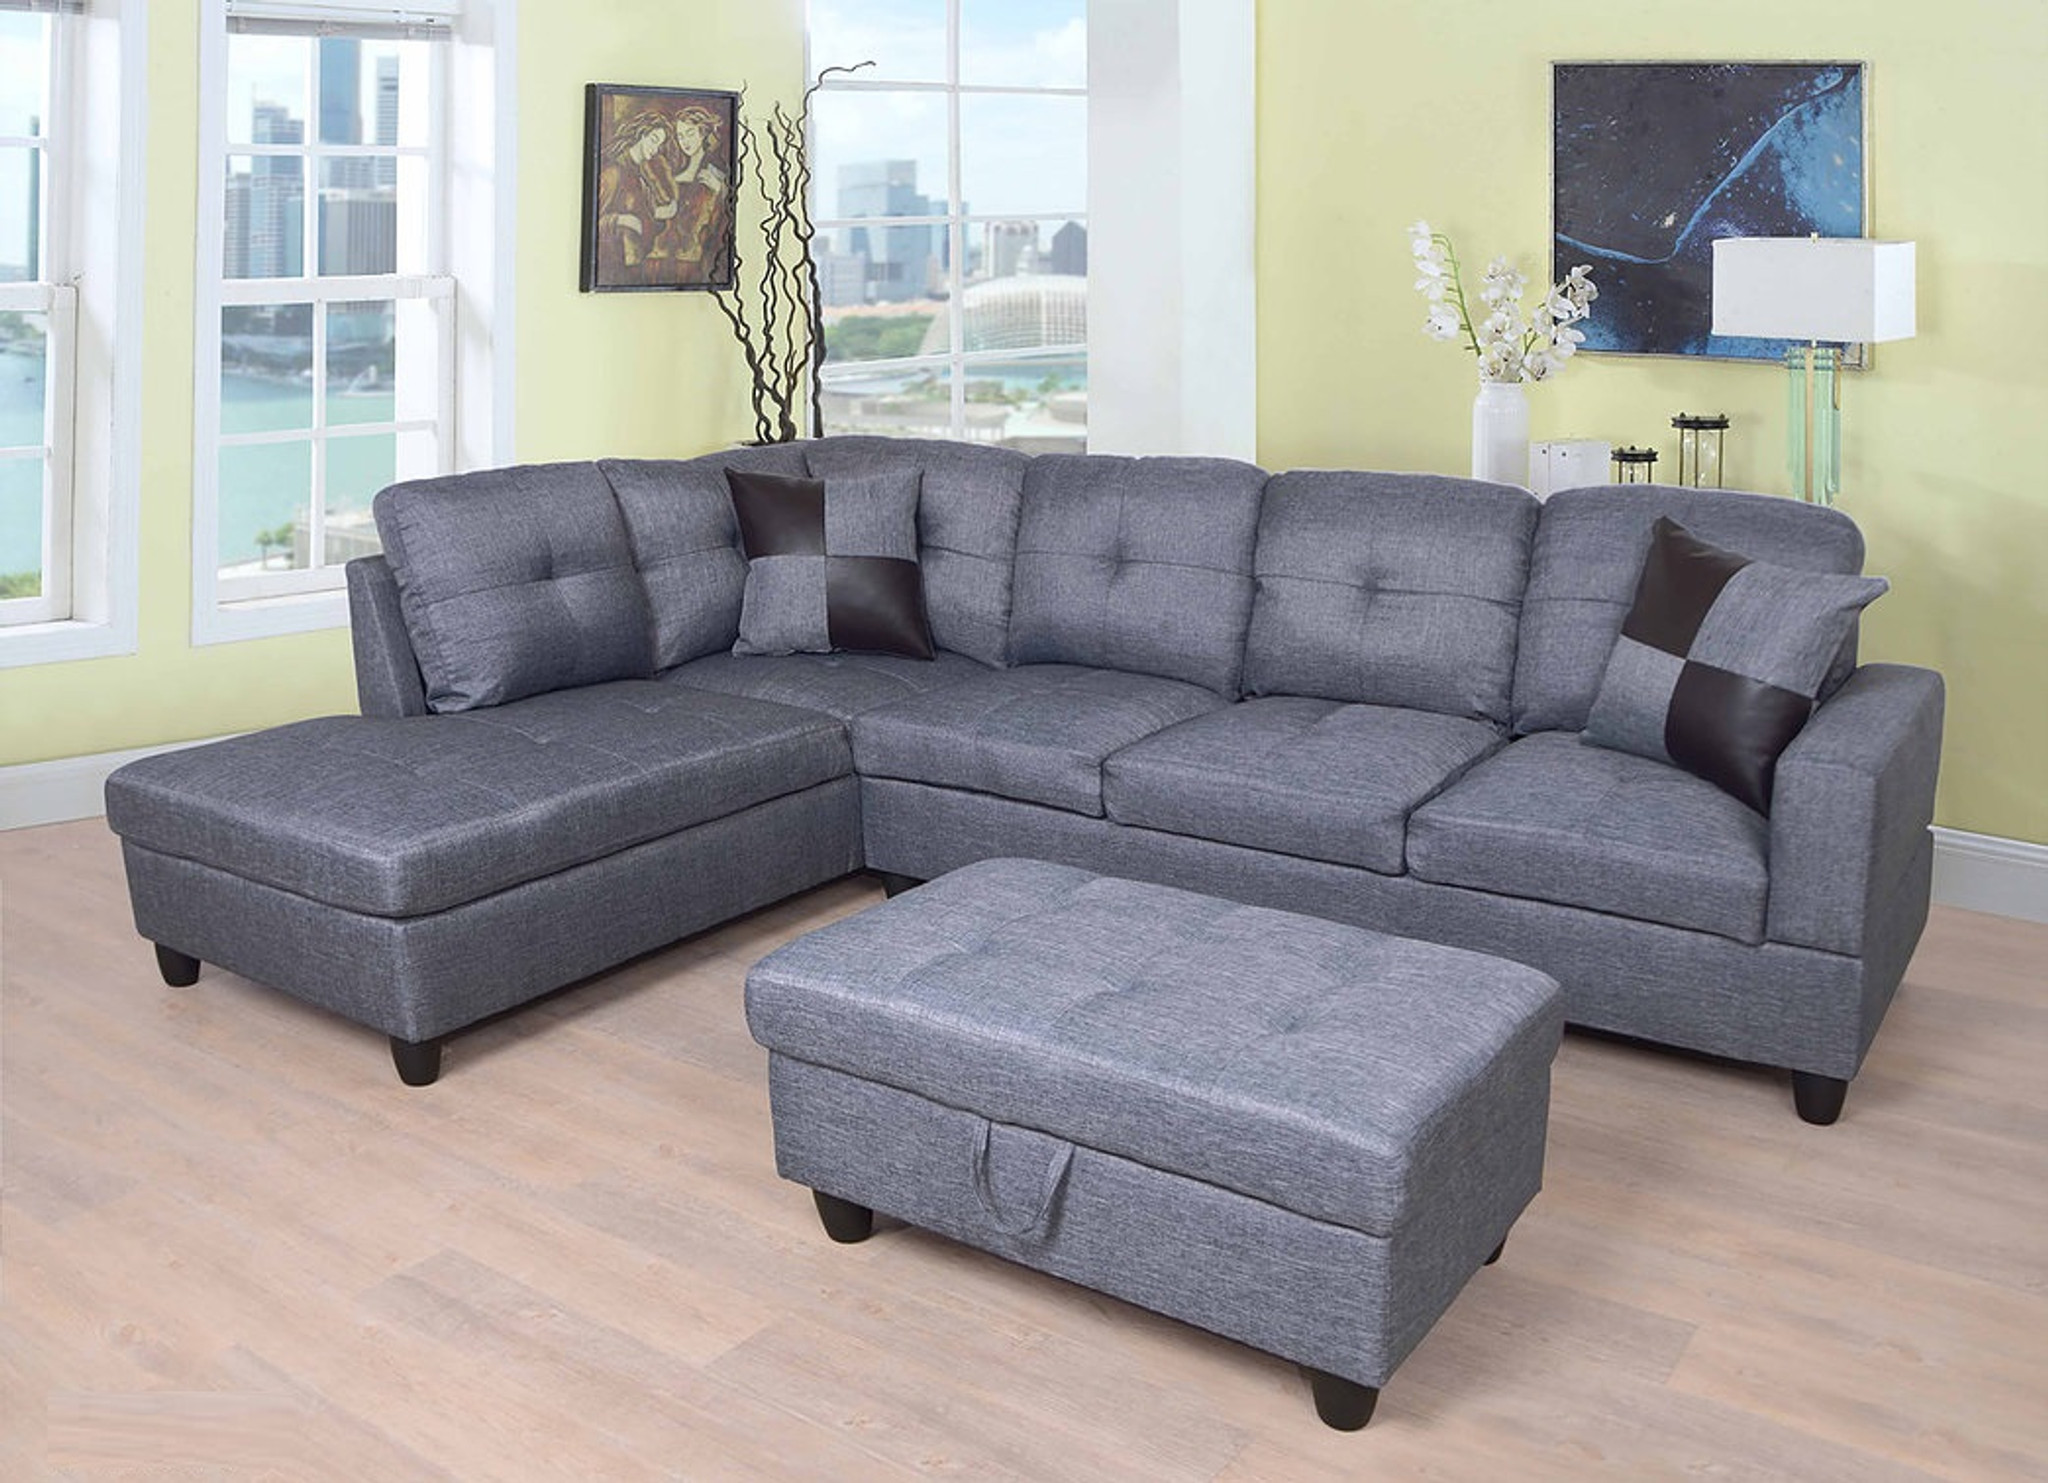 Blue Gray Color 3pcs Fabric Sectional Sofa Chaise And Storage